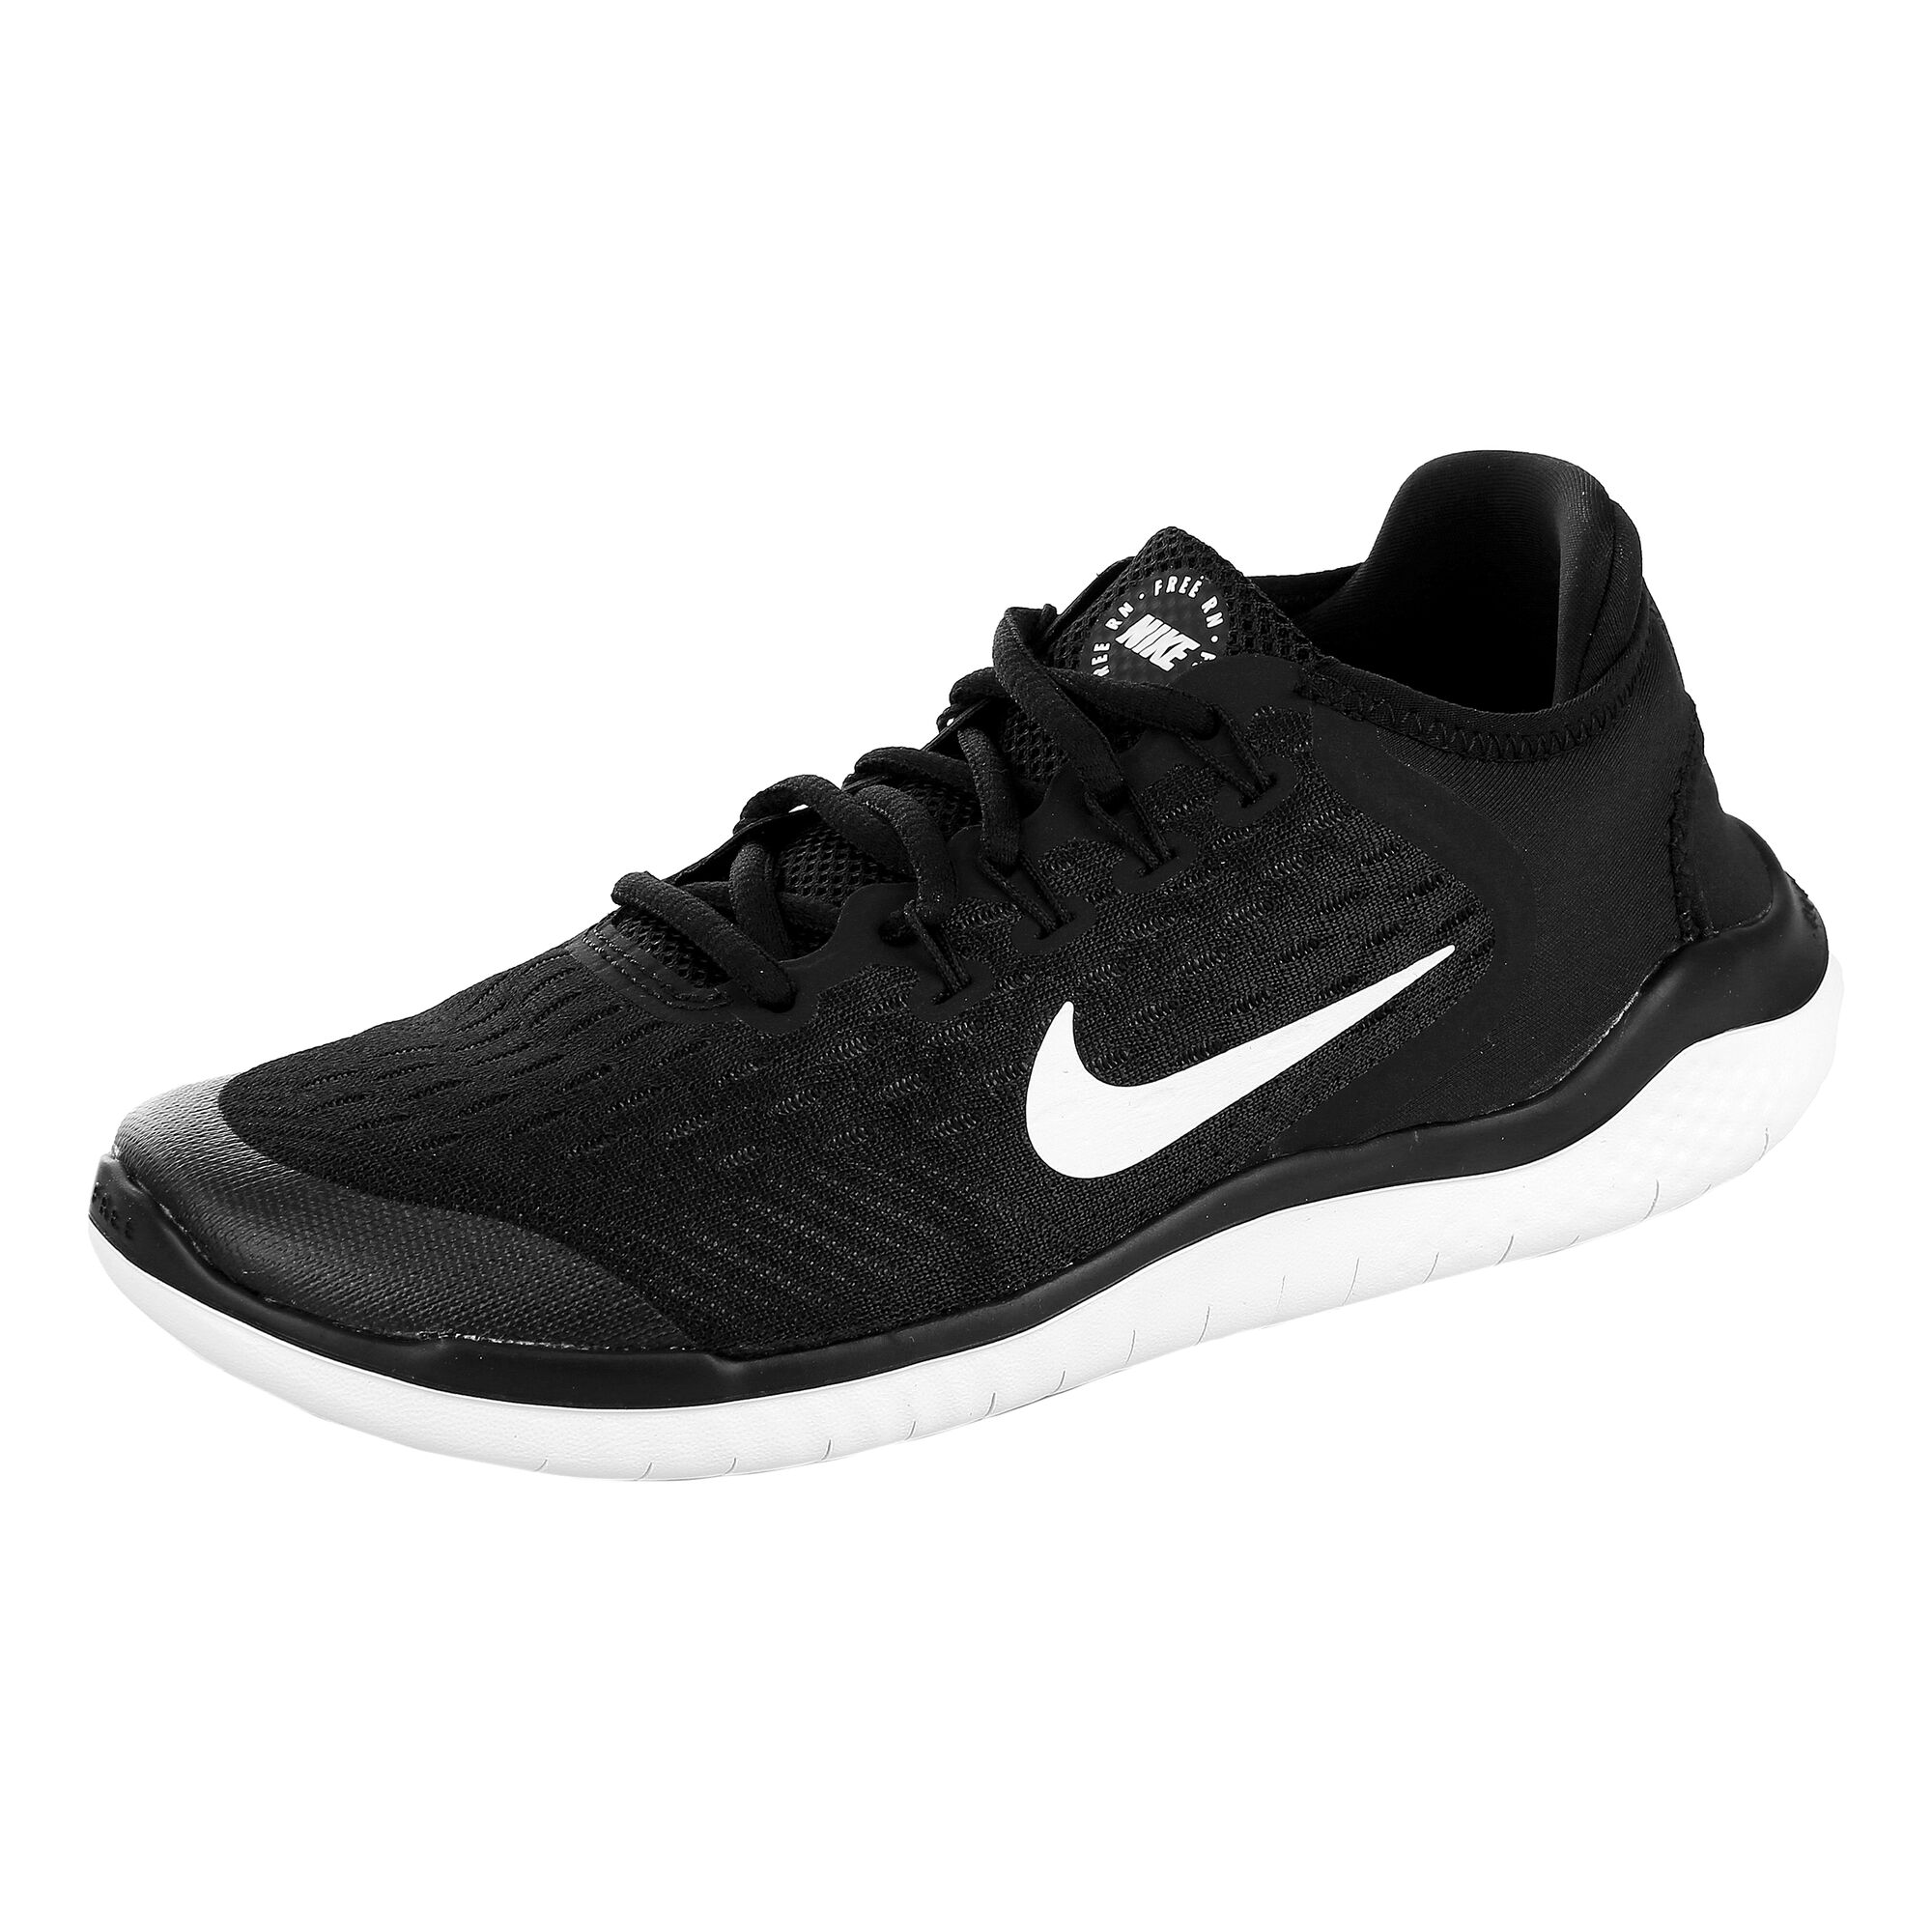 hot sale online b9590 6bdf9 buy Nike Free Run 2018 Natural Running Shoe Kids - Black ...